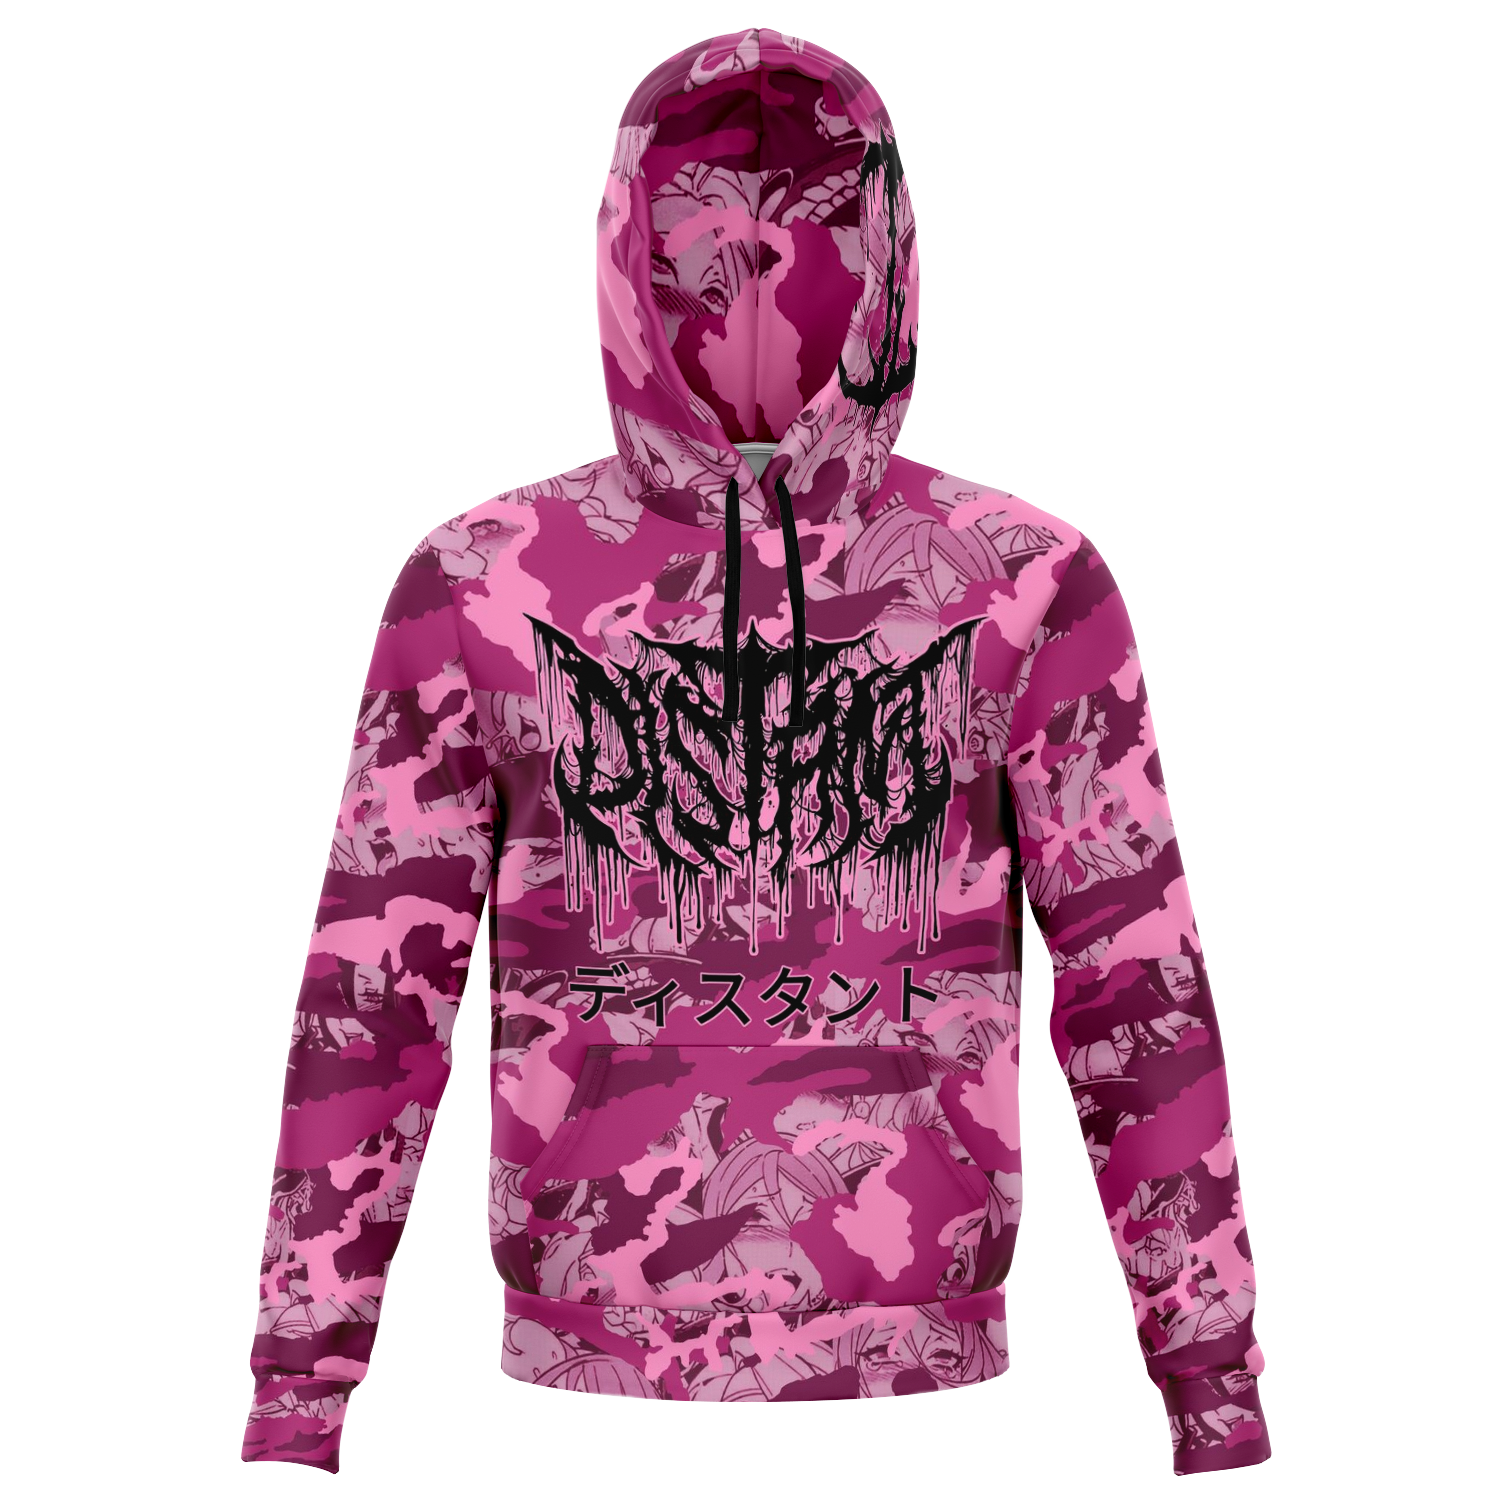 Officially Licensed Distant 'Pink Anime Camo' All Over Hoodie